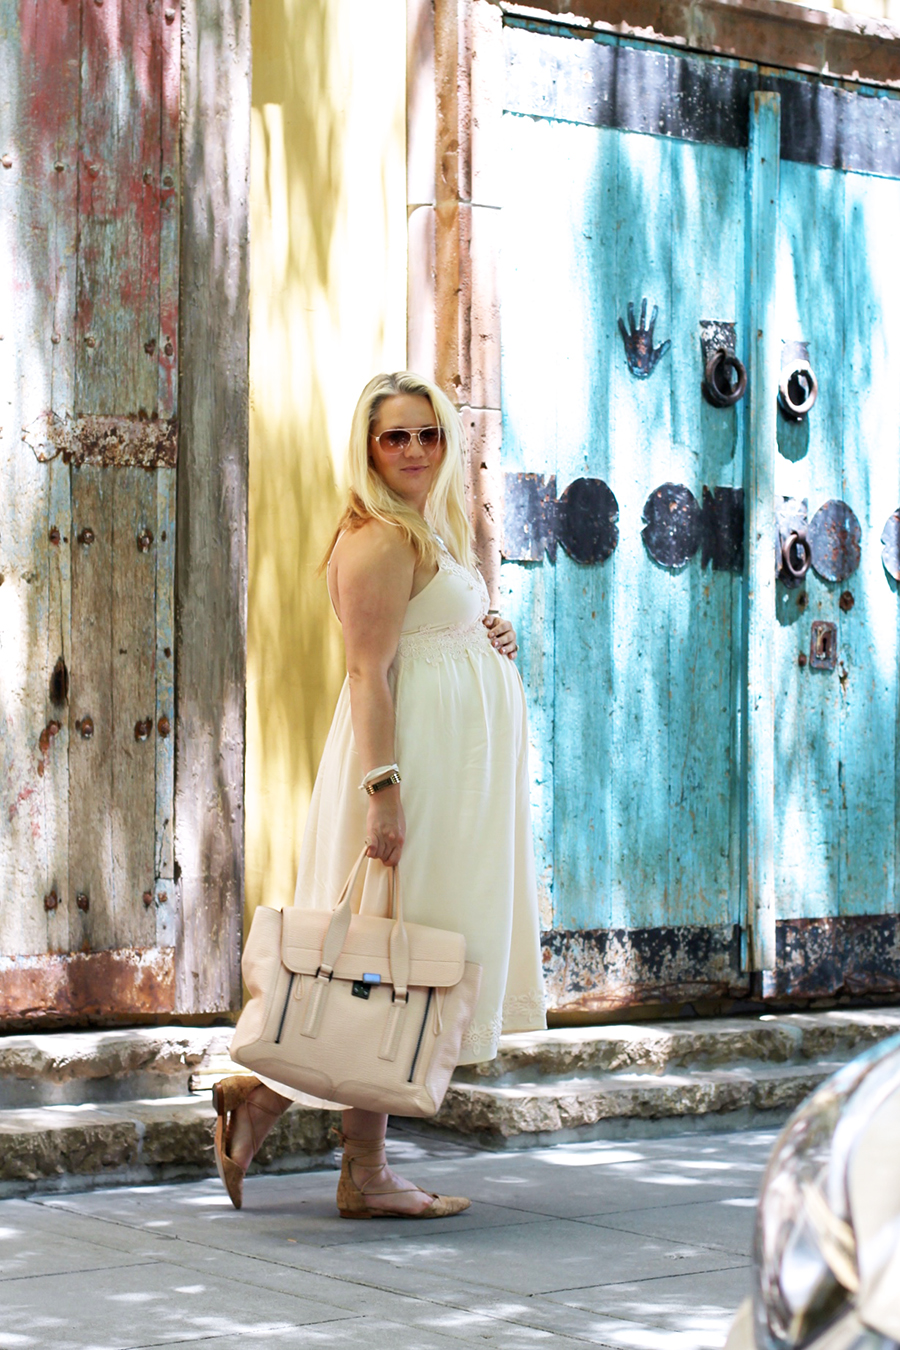 Forever 21 Lace Dress-Maternity Style-Outfit Inspiration-Pregnancy Style-Have Need Want 5